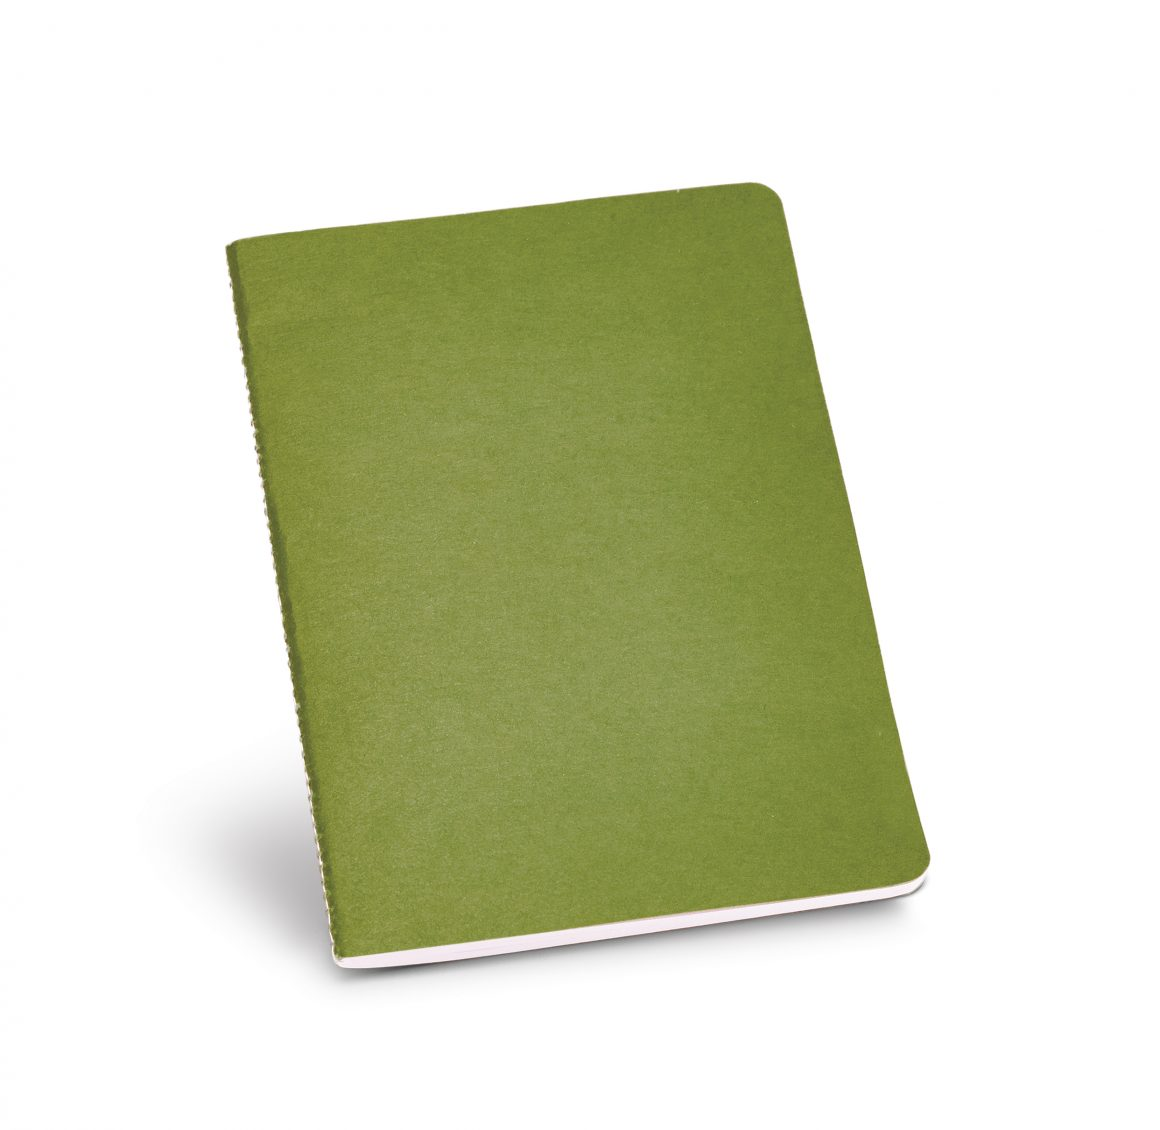 Trewoon A5 Notepad Product Code GP93495